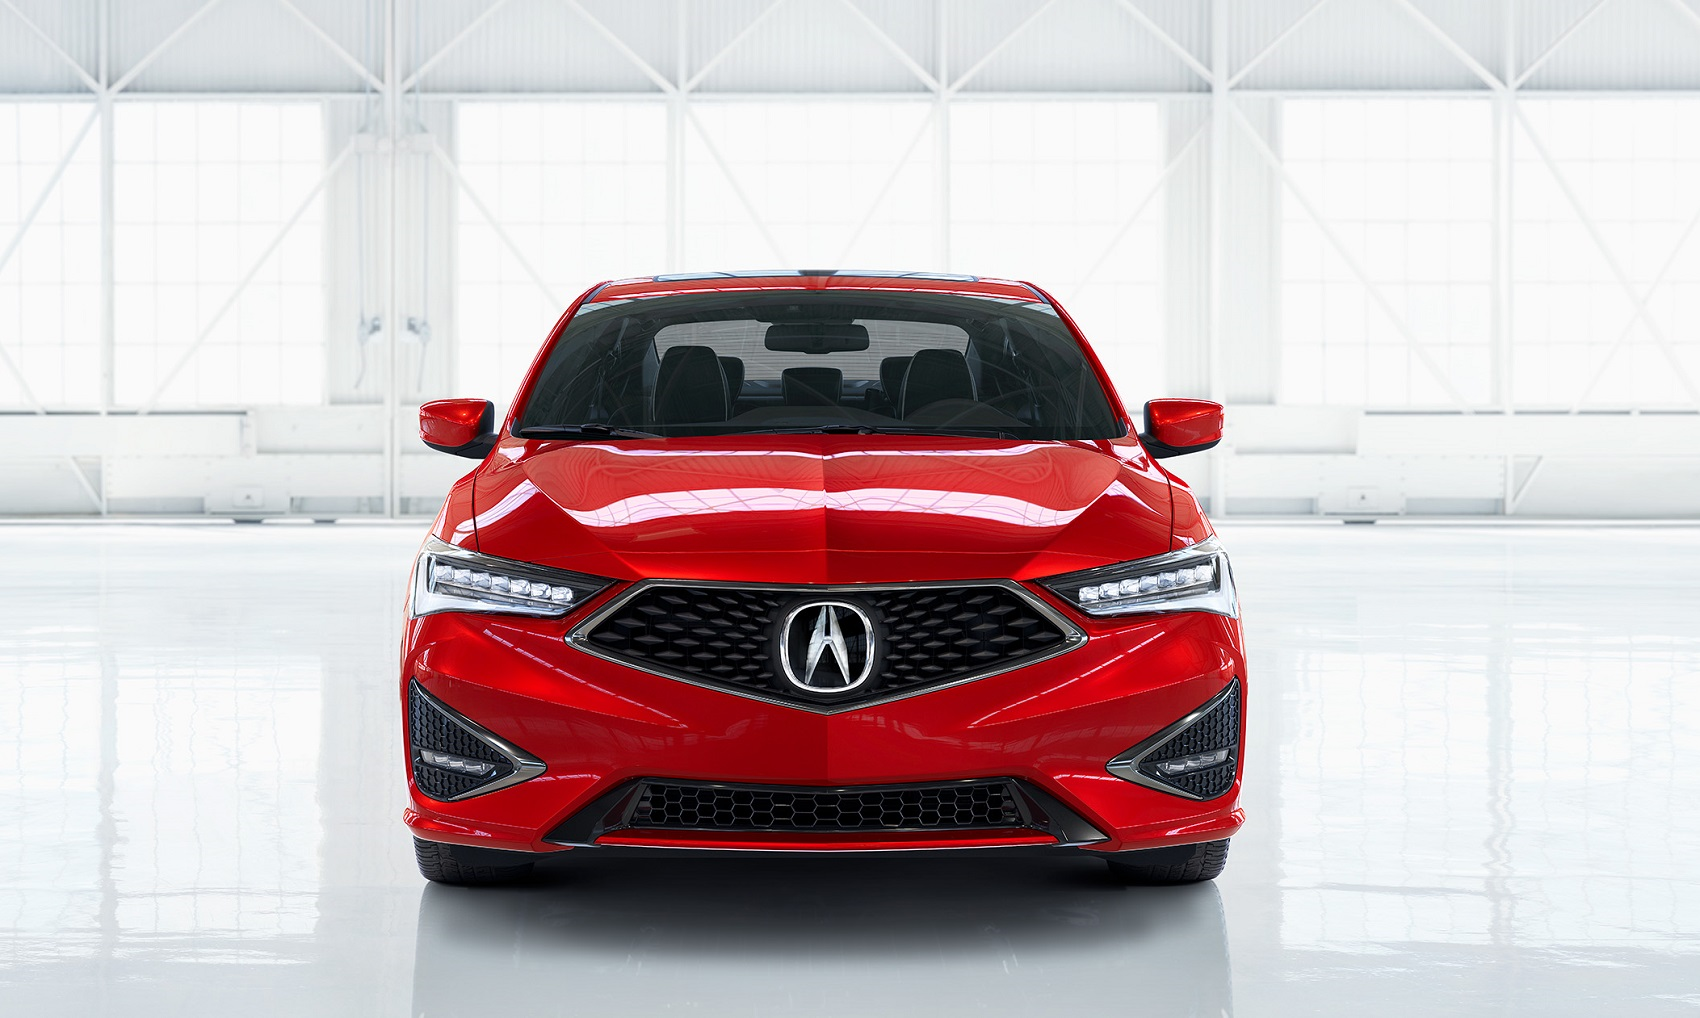 2019 Acura IlX Front End